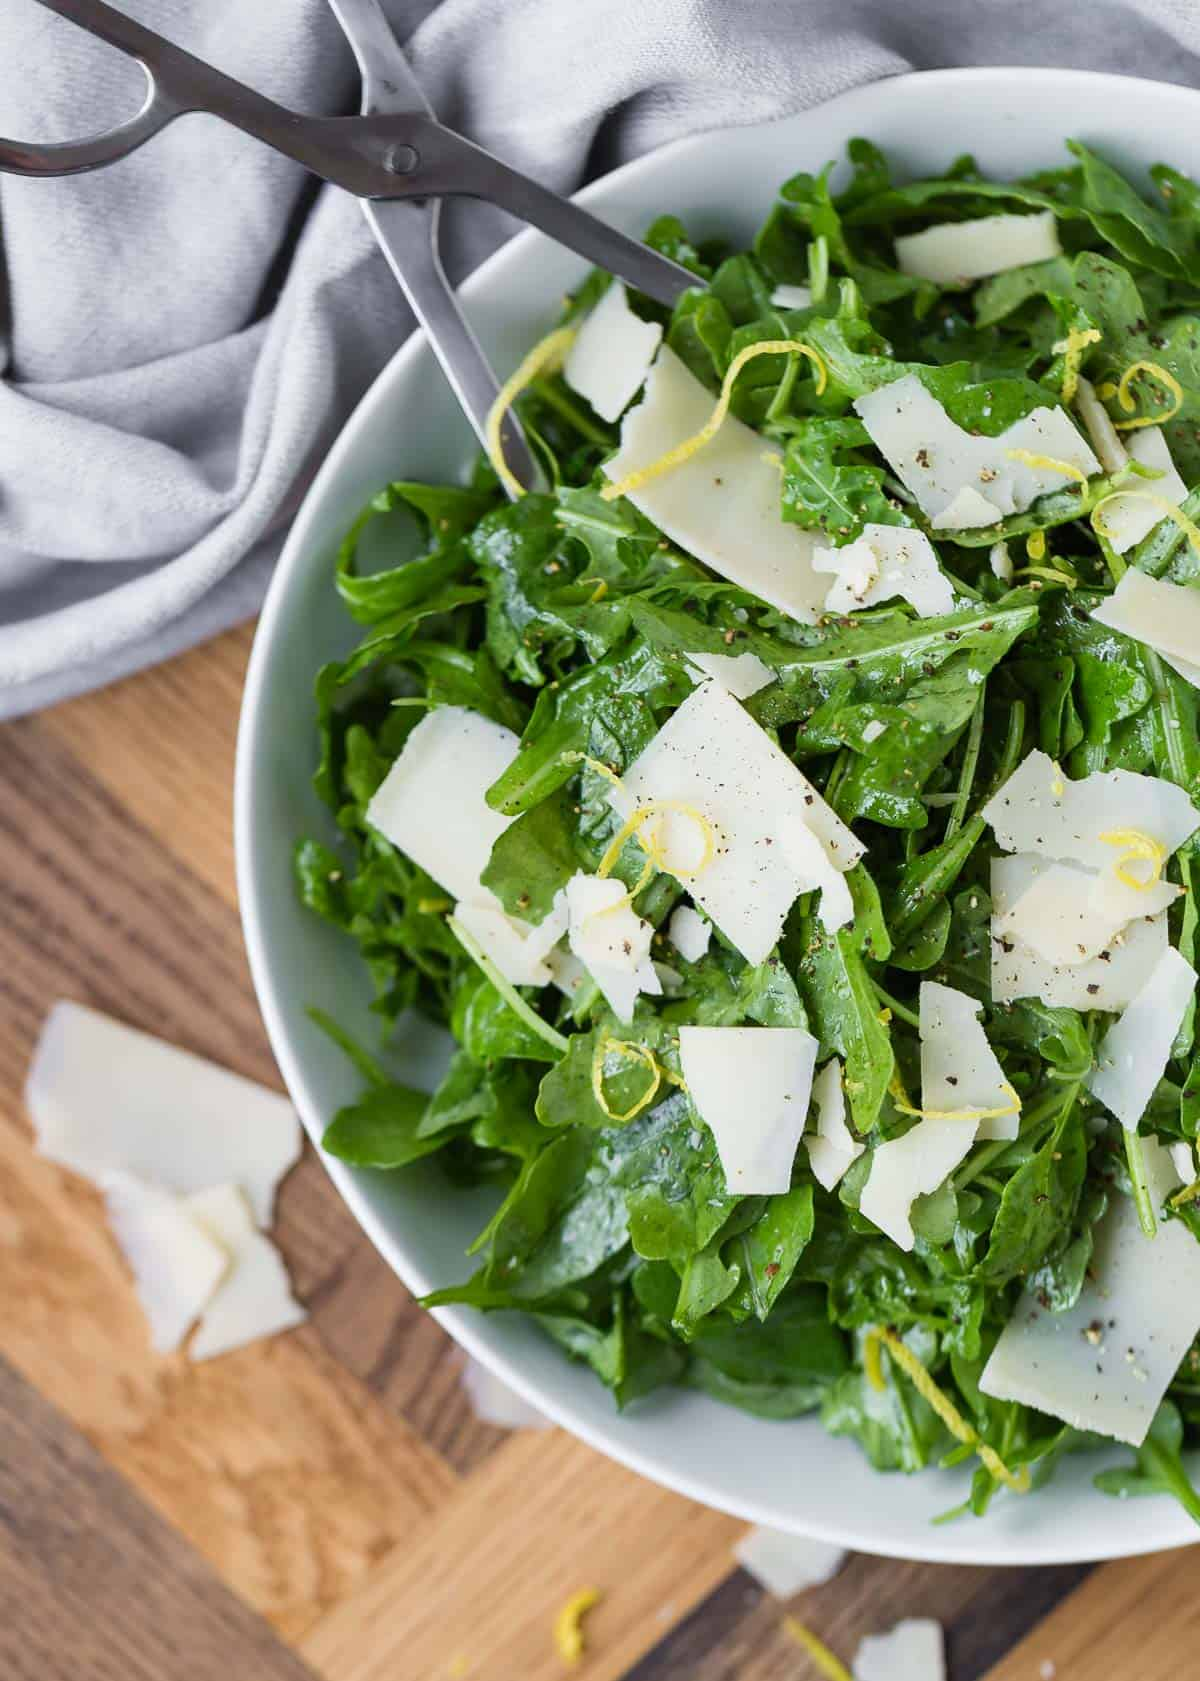 Overhead view of a salad made with arugula, parmesan, and a lemon vinaigrette.